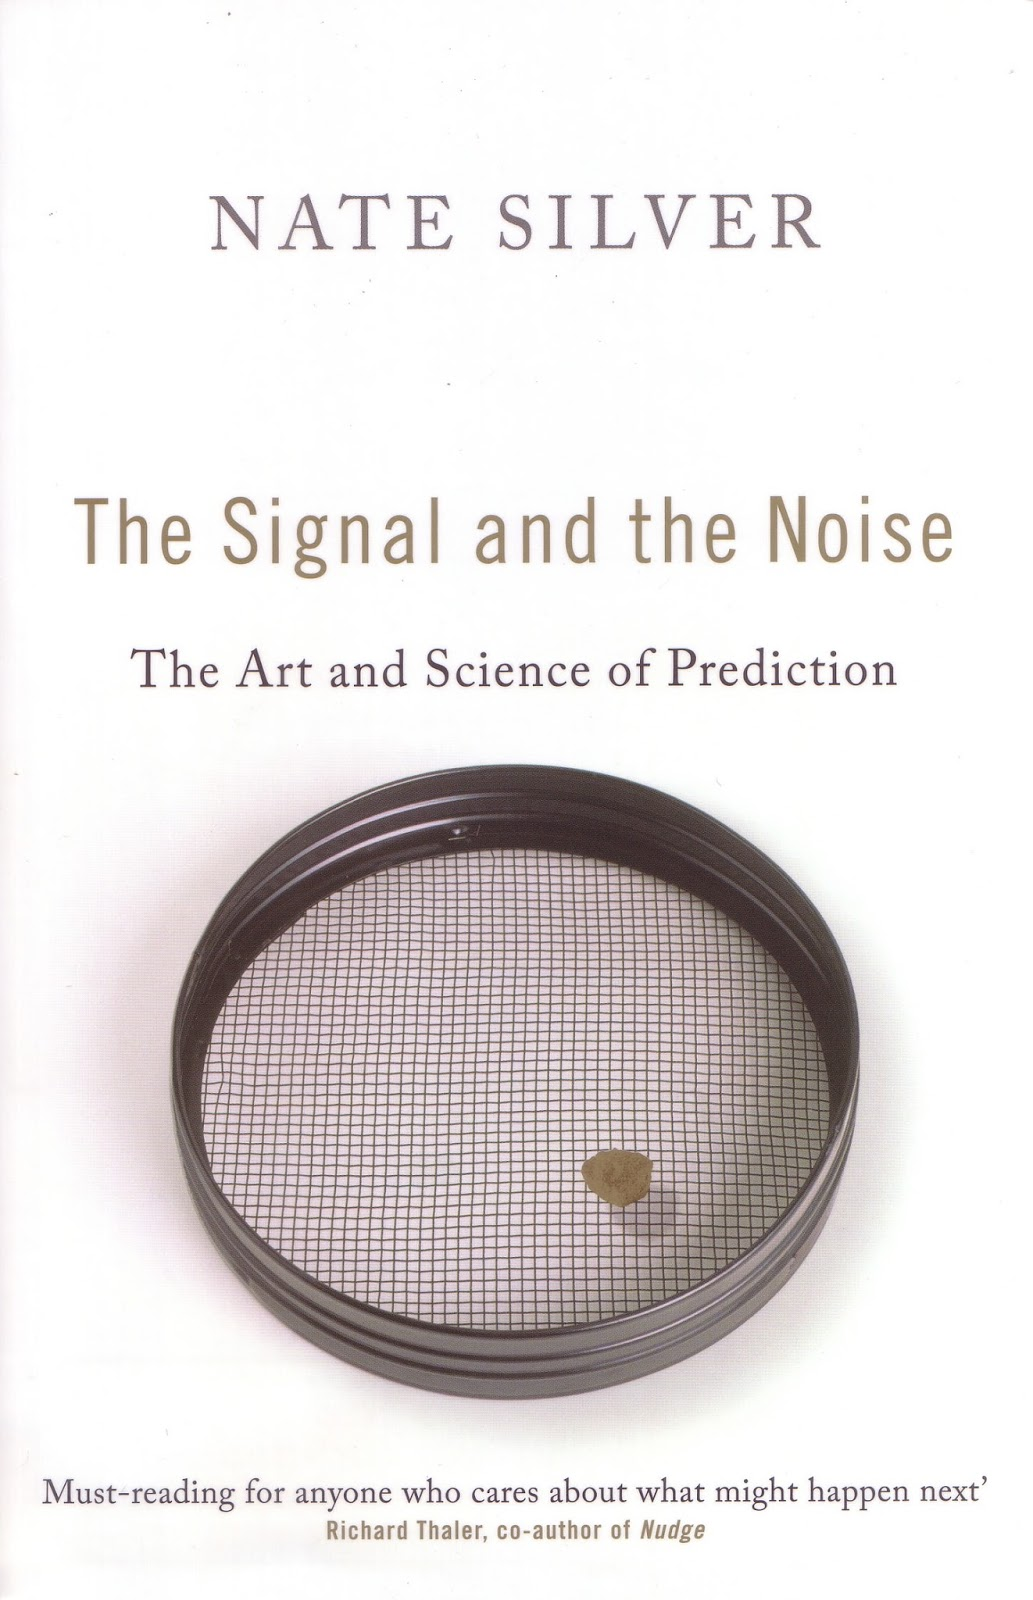 nate silver noise and signal pdf